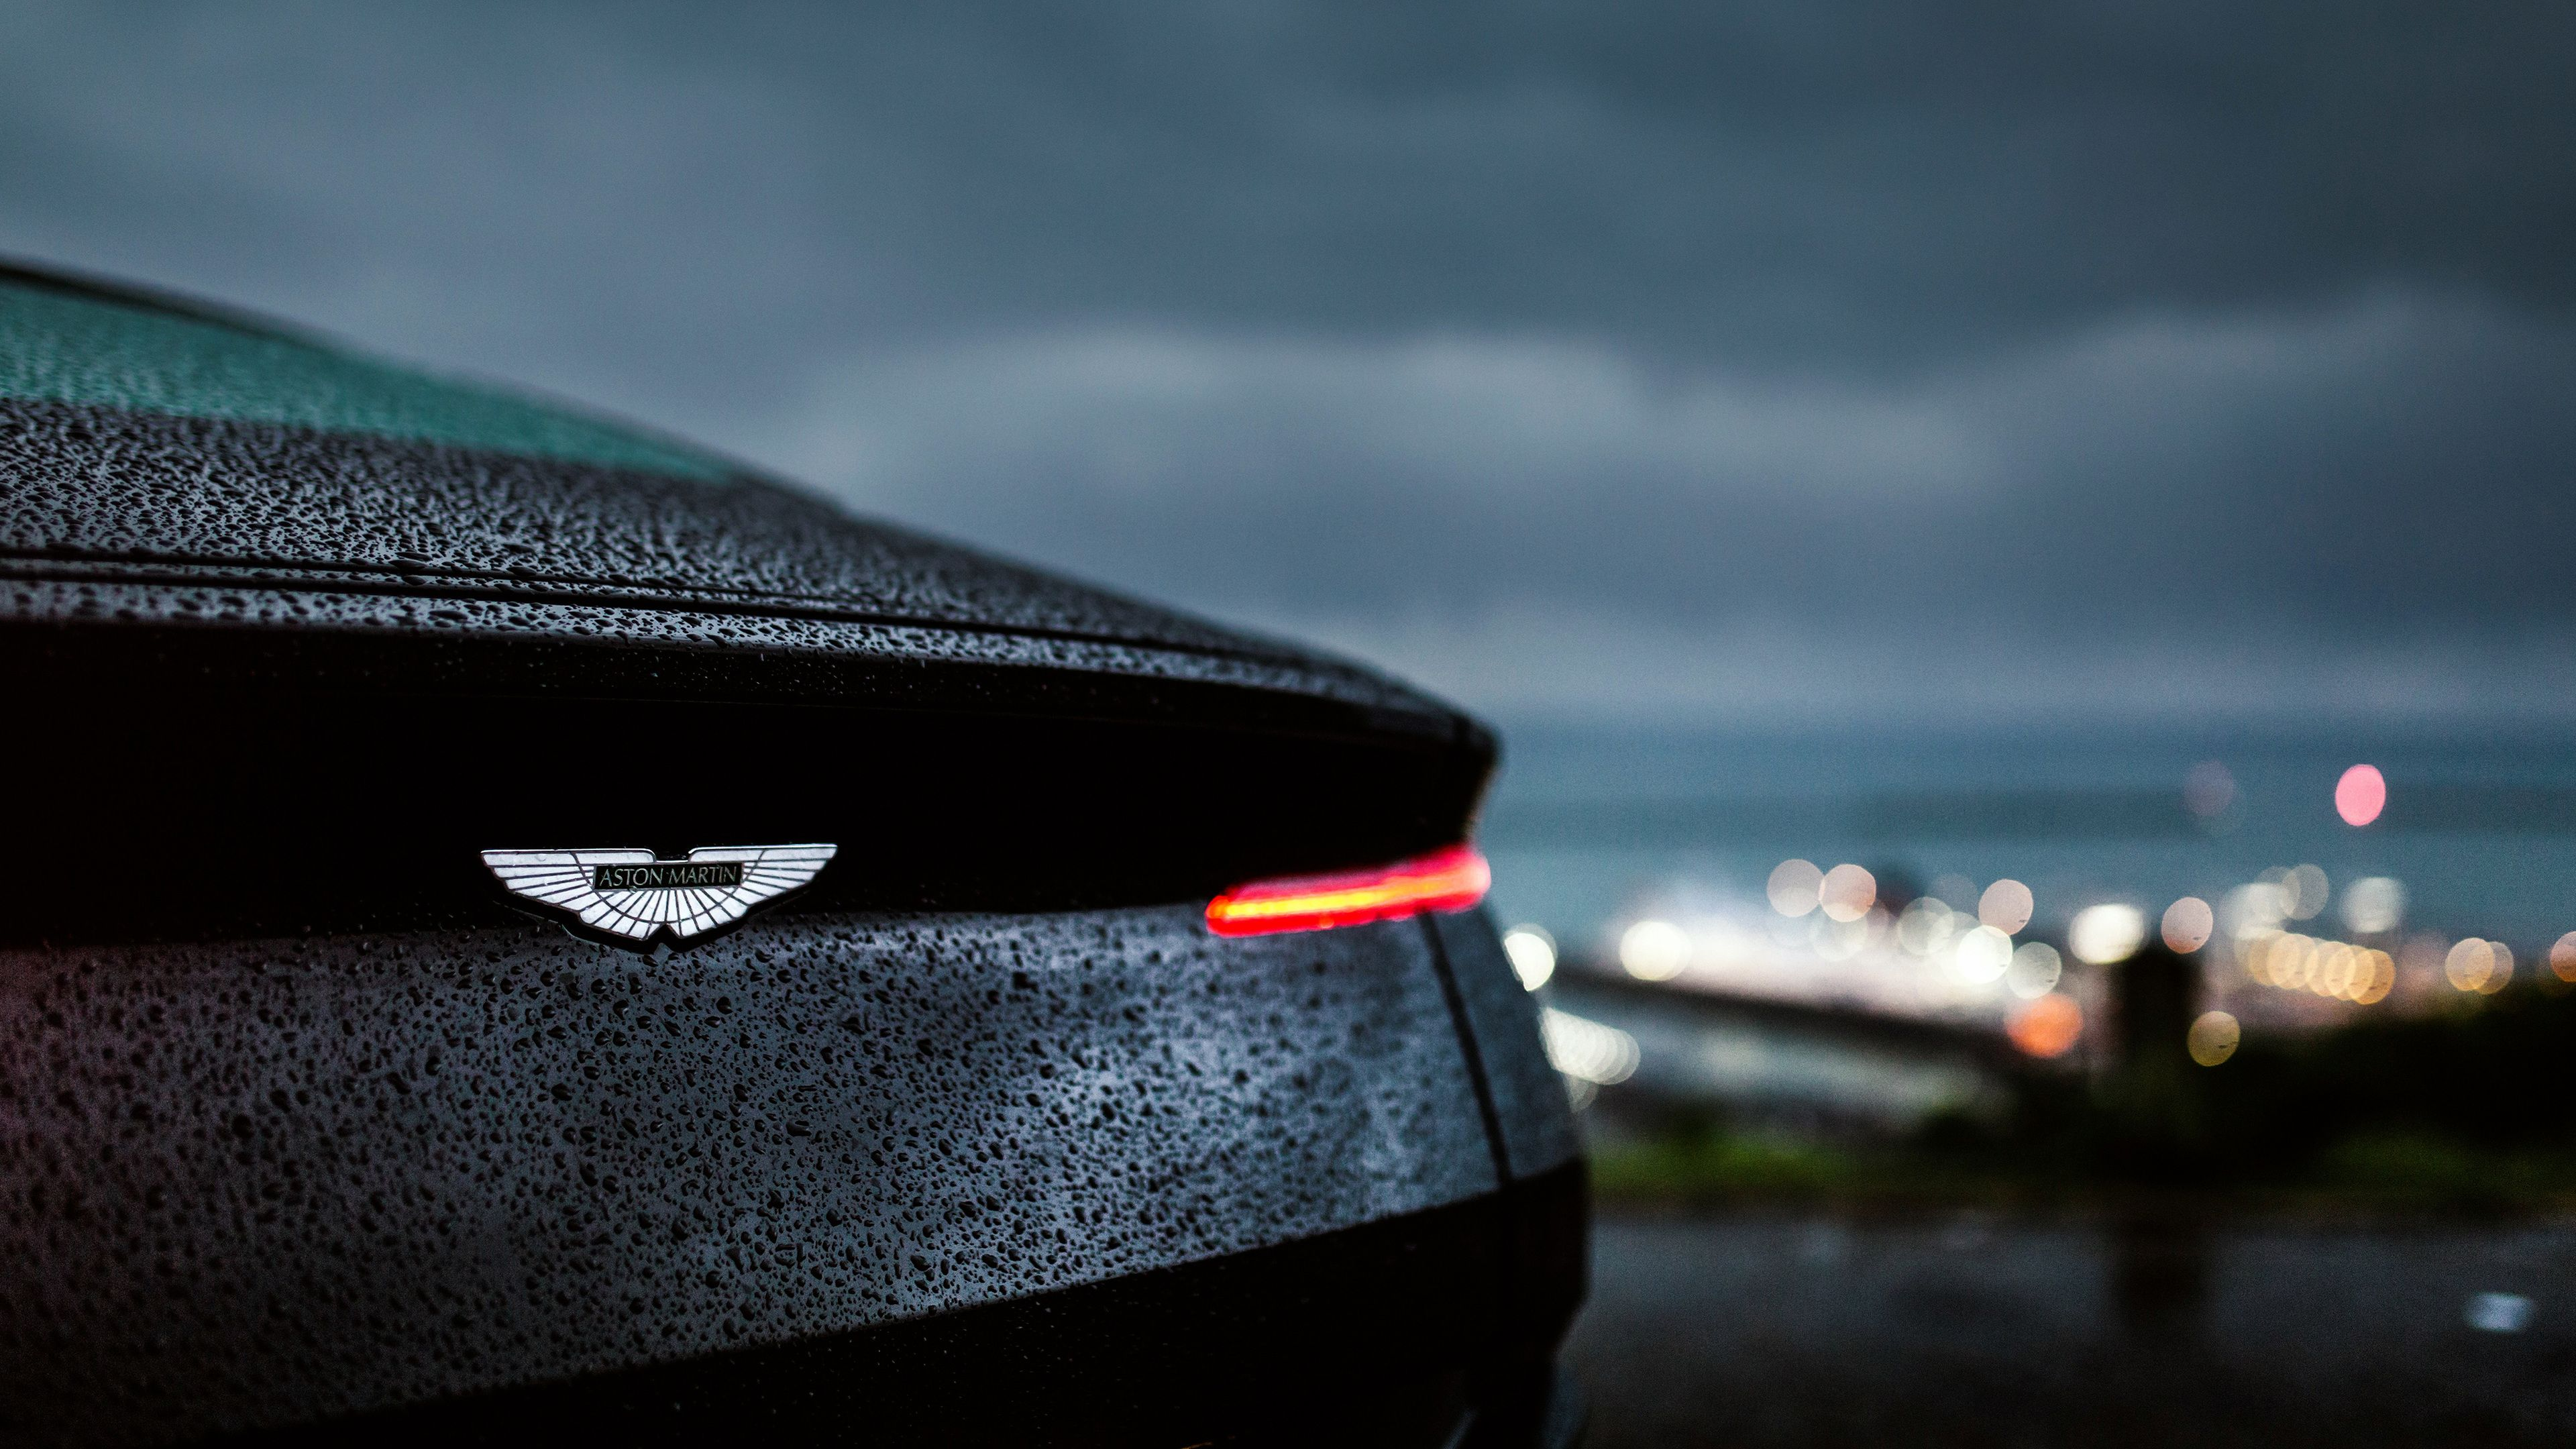 Aston Martin Db11 Rain 4k Rain Wallpapers Hd Wallpapers Cars Wallpapers Aston Martin Wallpapers Aston Martin Db11 Wall Aston Martin Db11 Aston Martin Aston